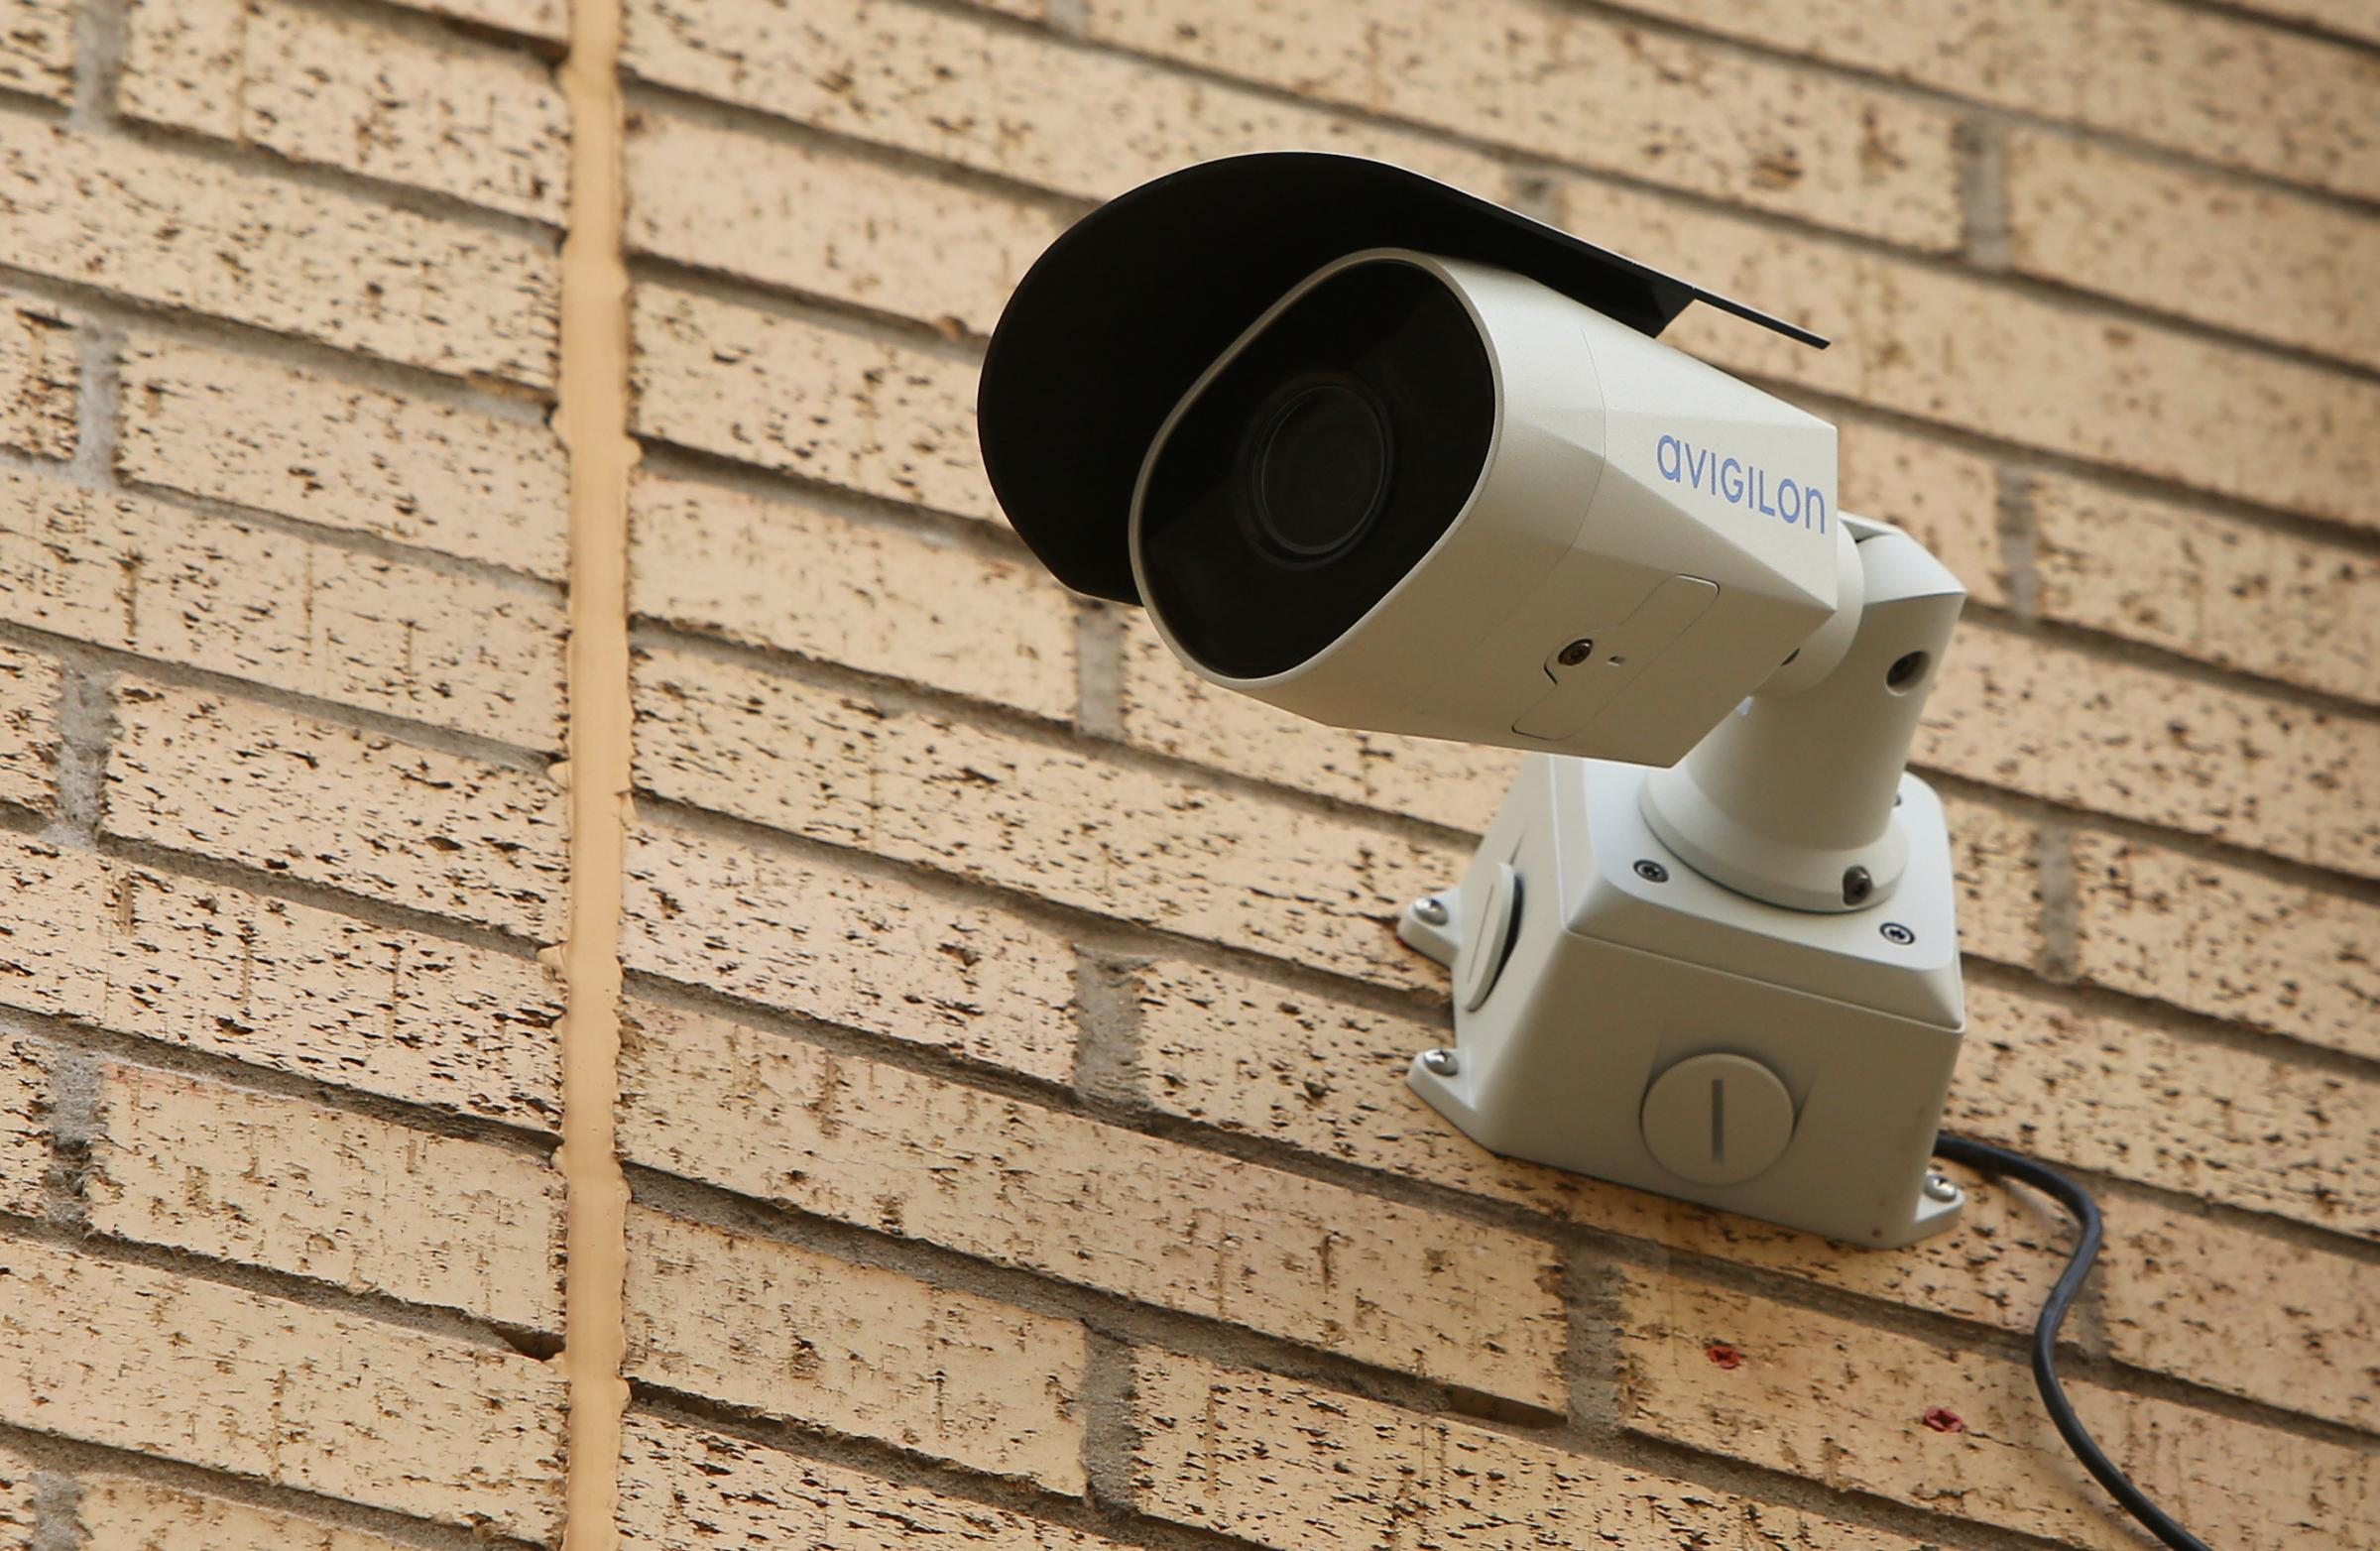 Teachers were unaware that CCTV had been installed in a North Lanarkshire secondary school